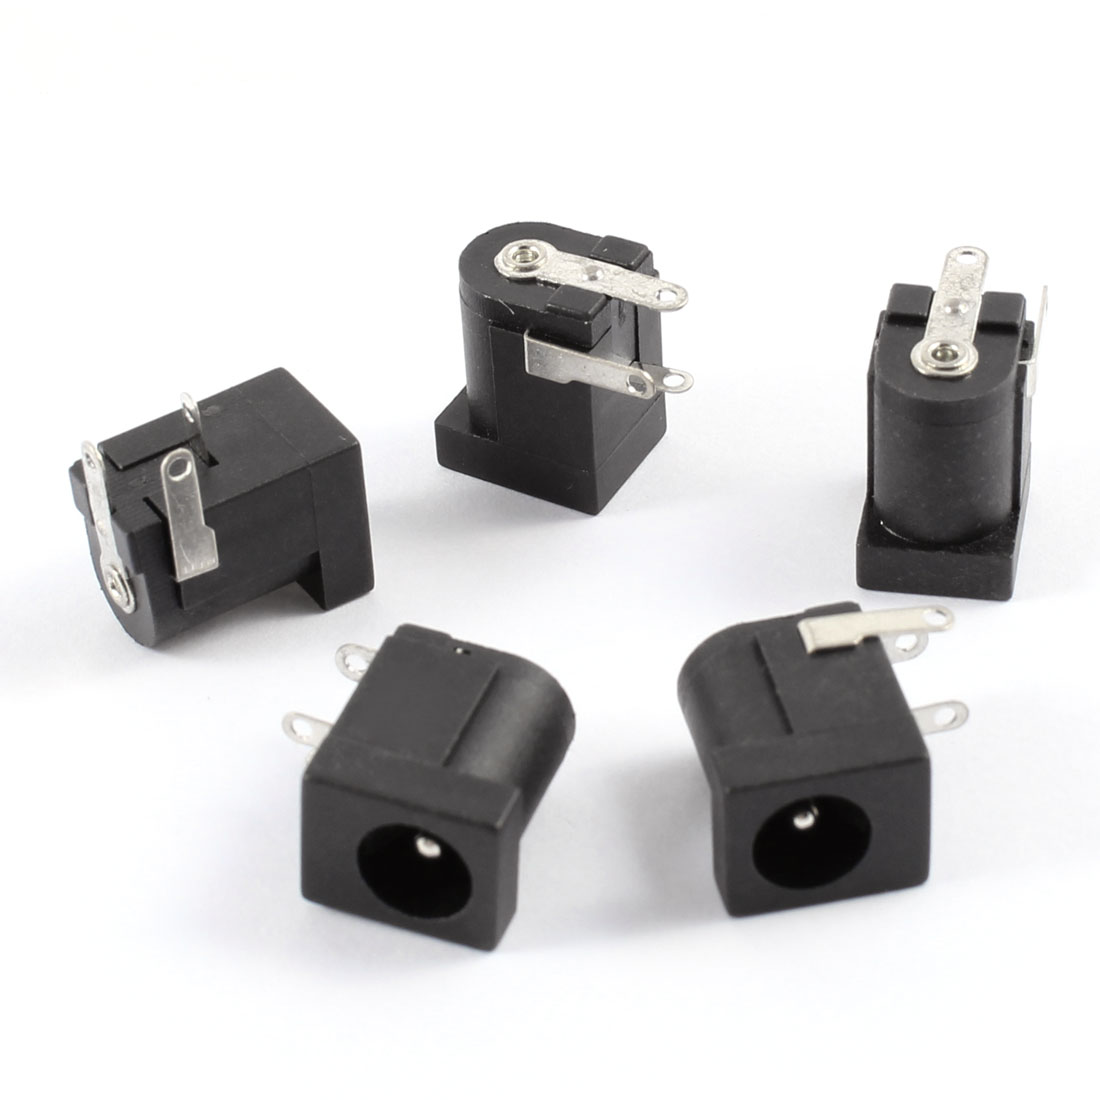 5 Pcs PJ002A DC Power Jack Connector for Clevo 2200C 2200T 2700C 2700T TS30i